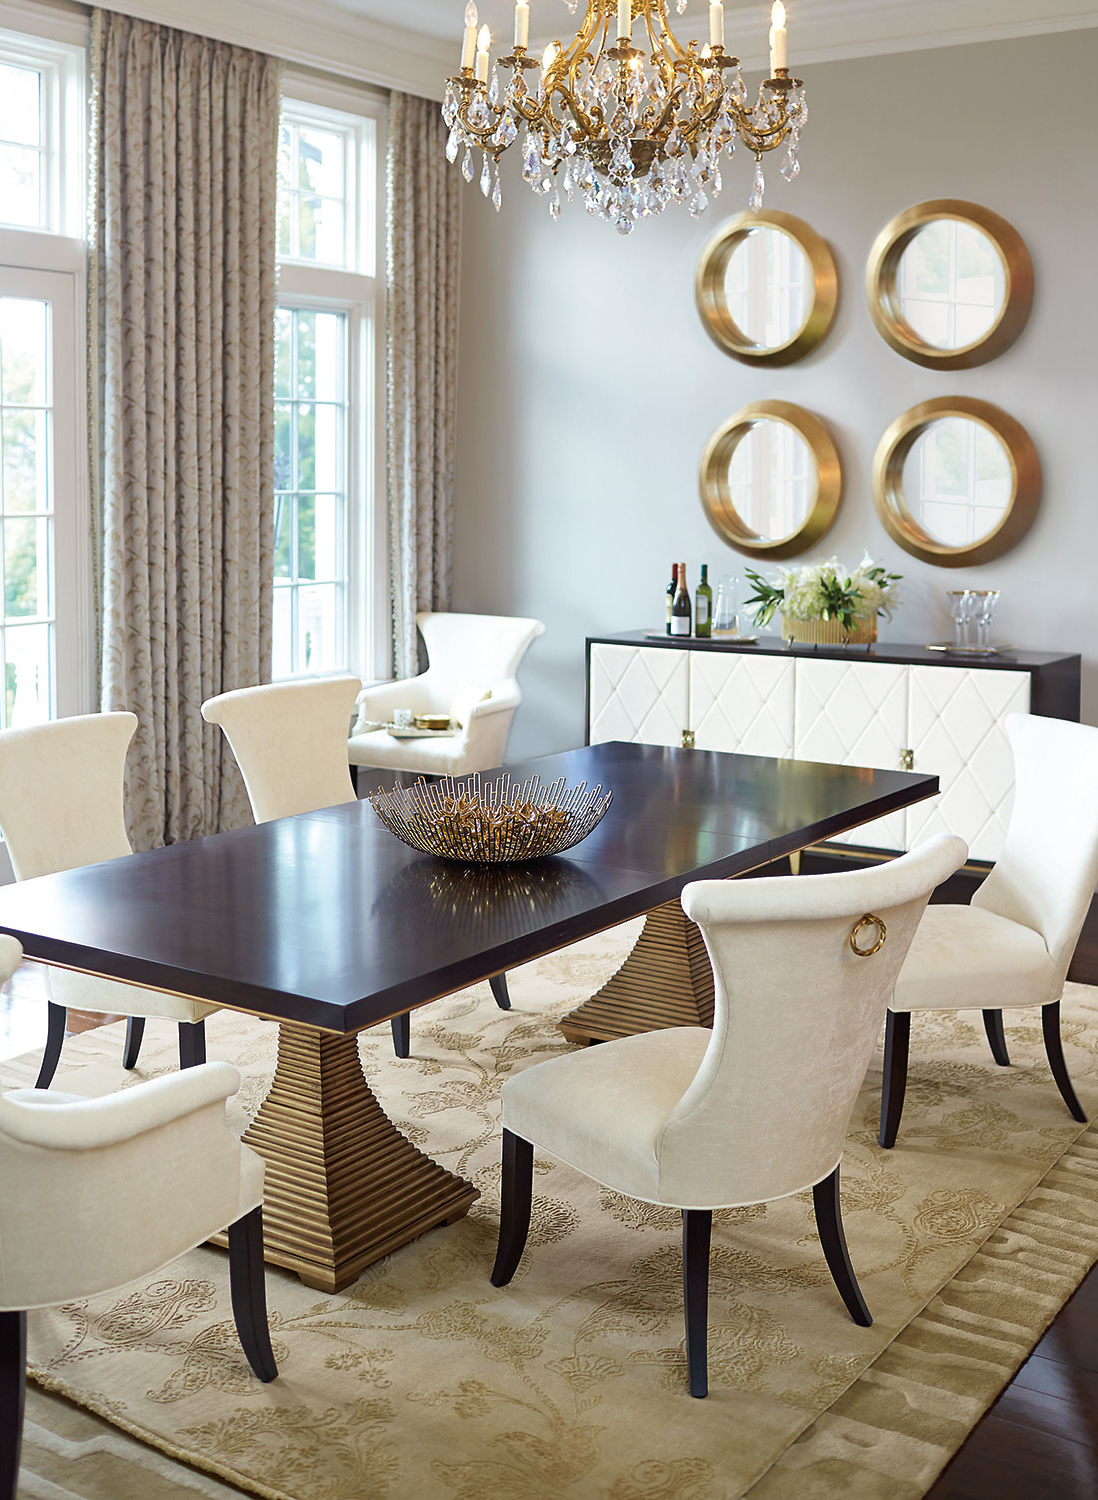 Dining Room with Interior Gold Accents